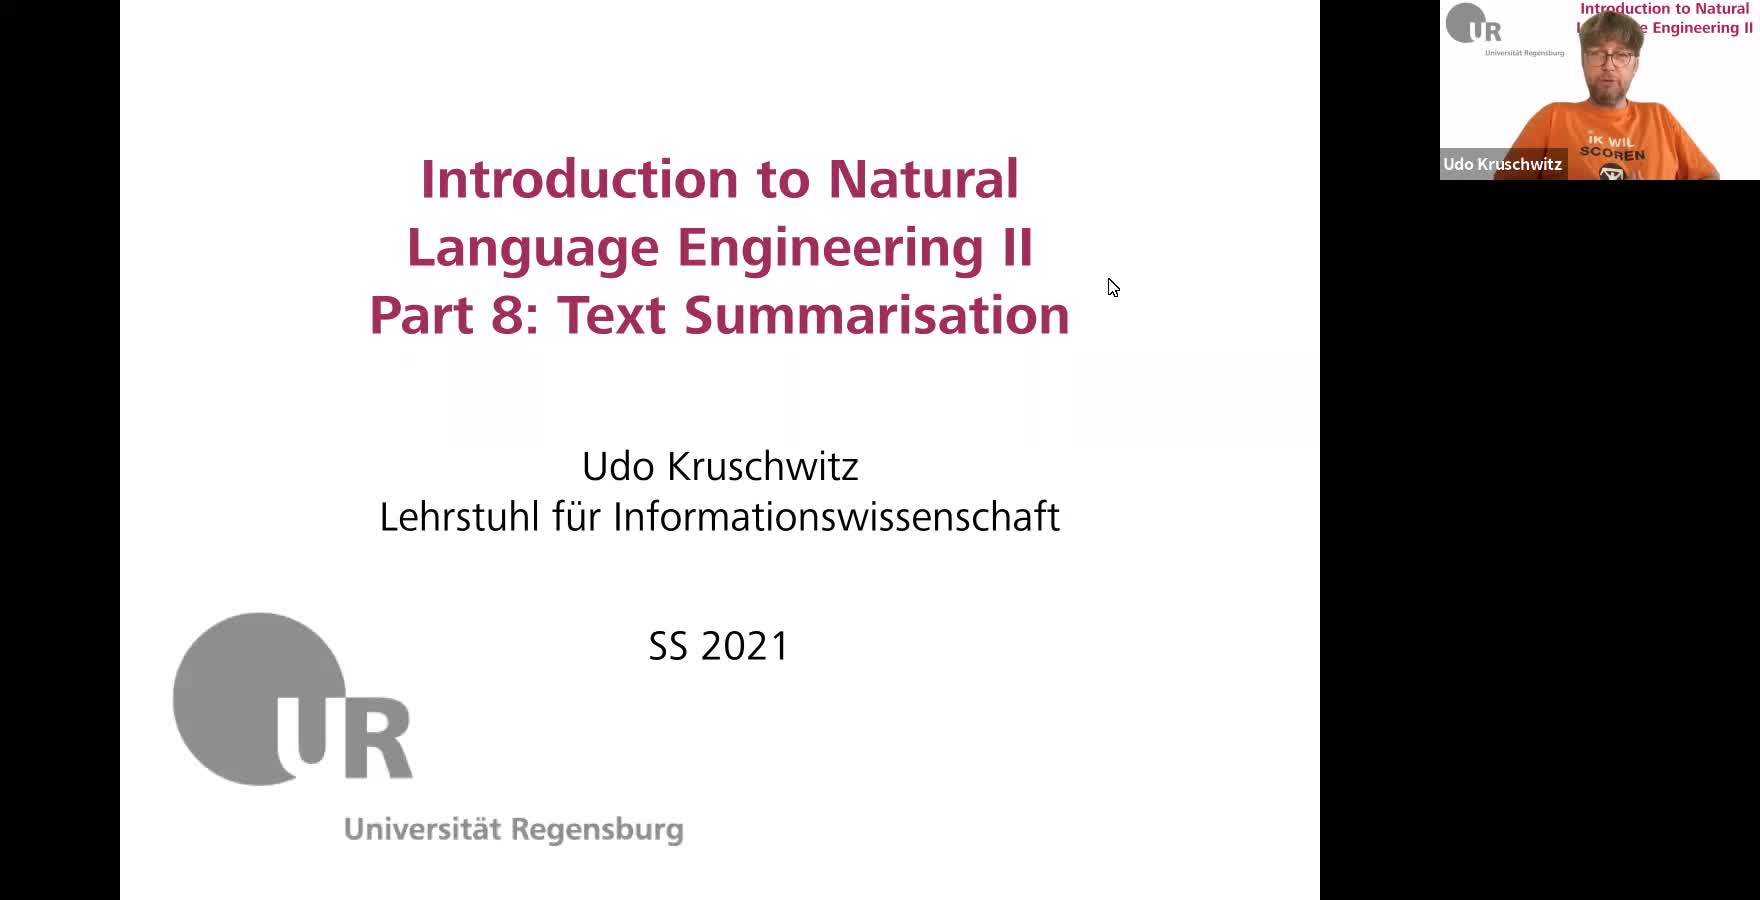 Introduction to Natural Language Engineering 2 / Informationslinguistik 2 - Lecture 10 (Text Summarisation)